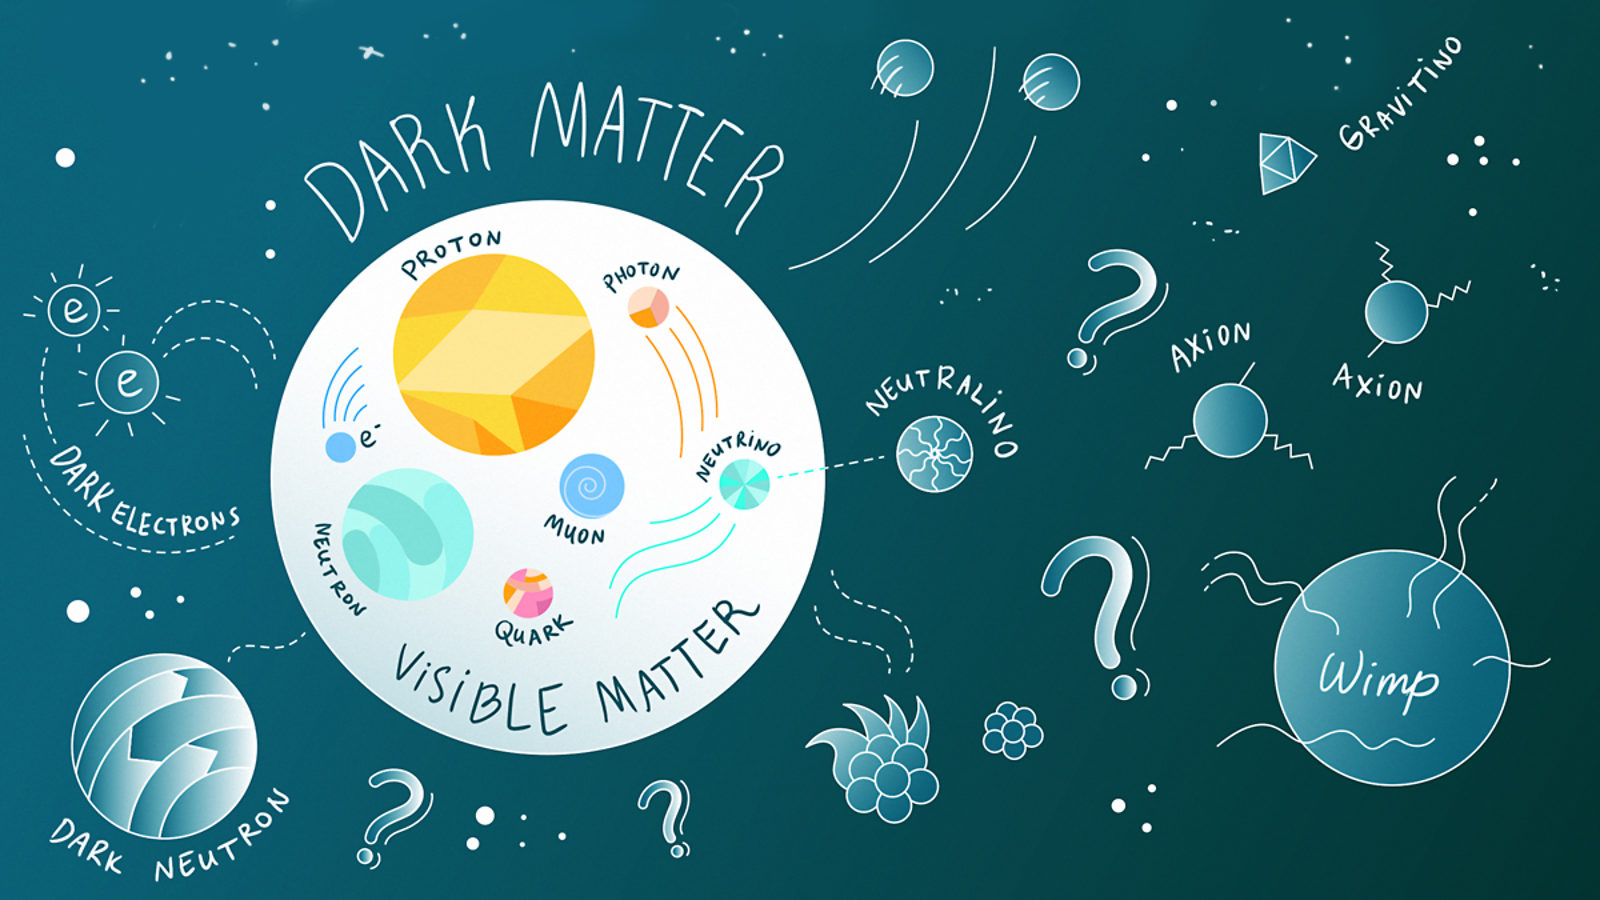 Illustration of dark matter, visible matter, dark neutron, WIMP, dark electrons, neutrino, axion, grintino